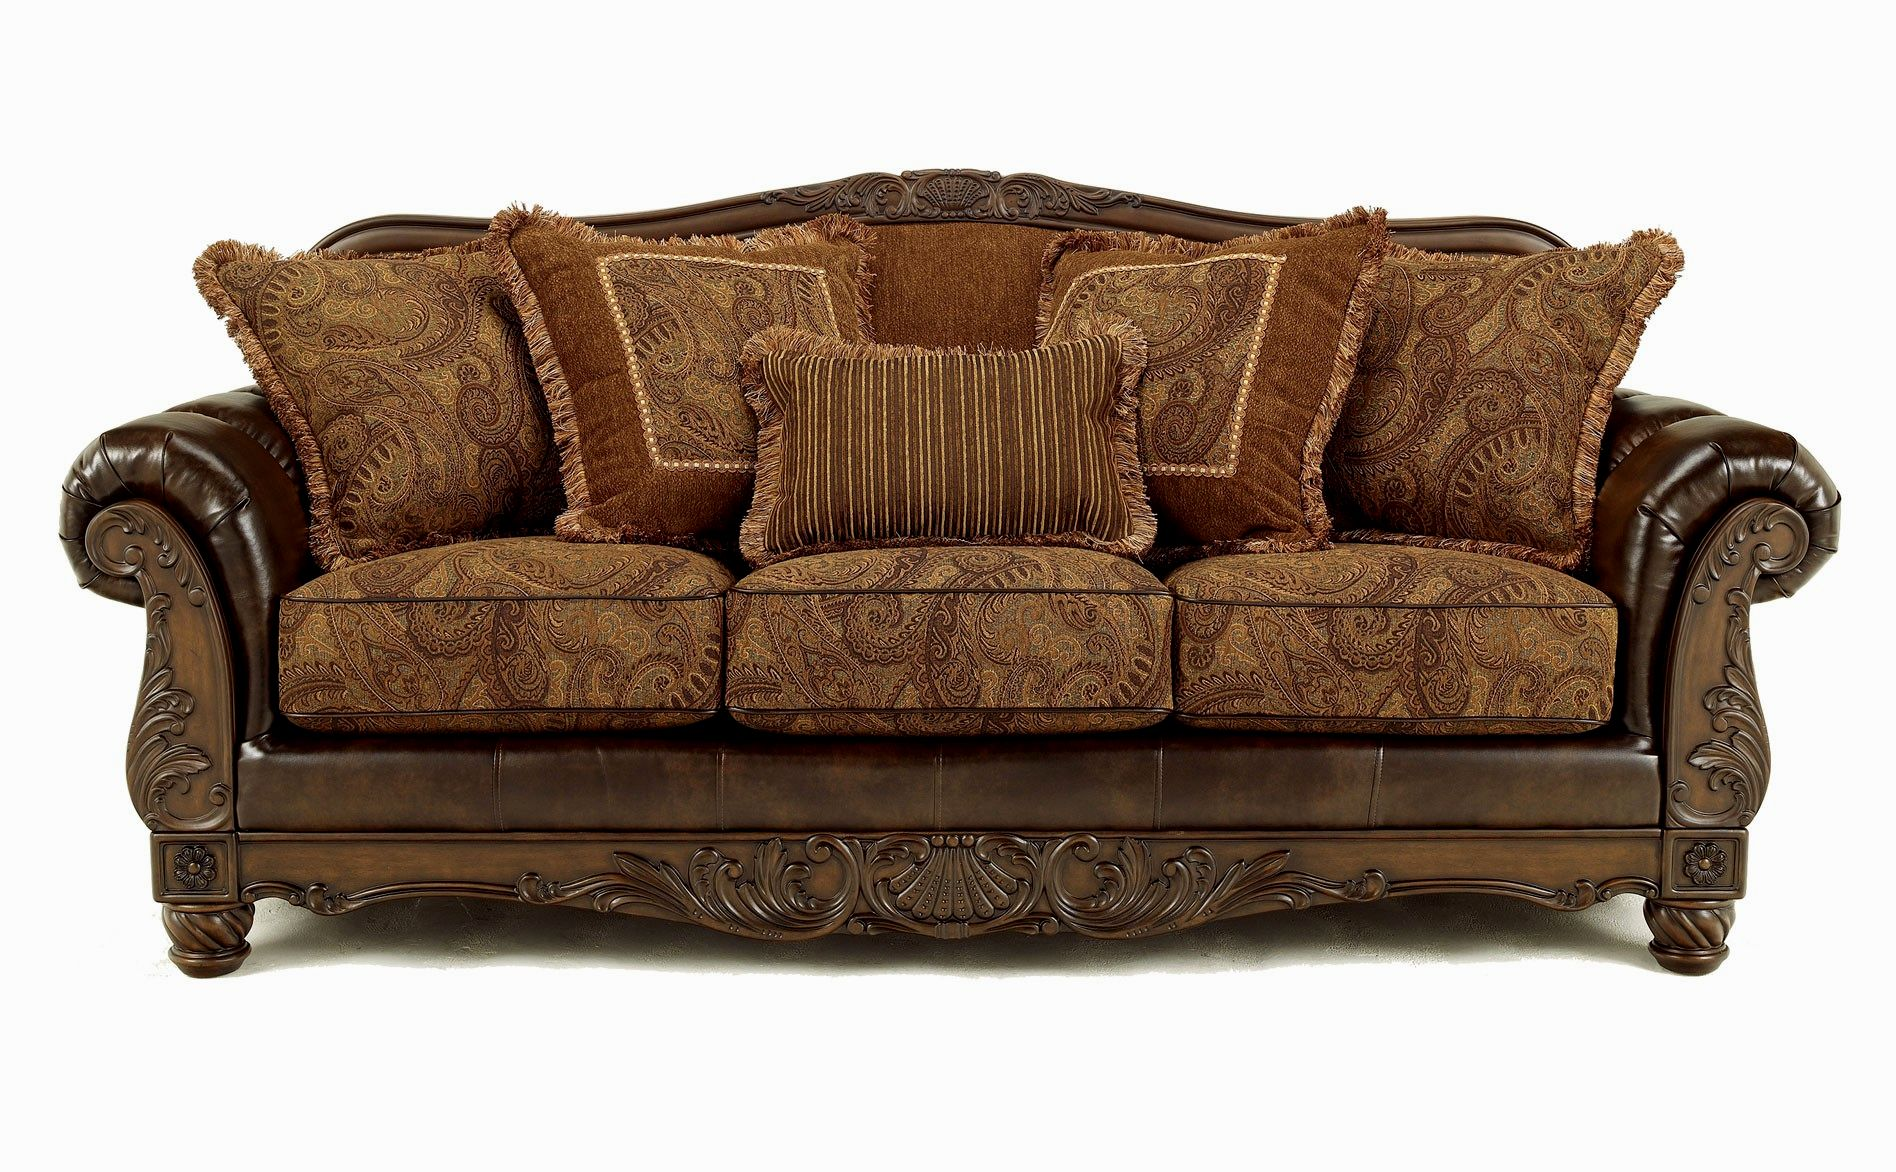 cool accent pillows for sofa inspiration-Contemporary Accent Pillows for sofa Layout